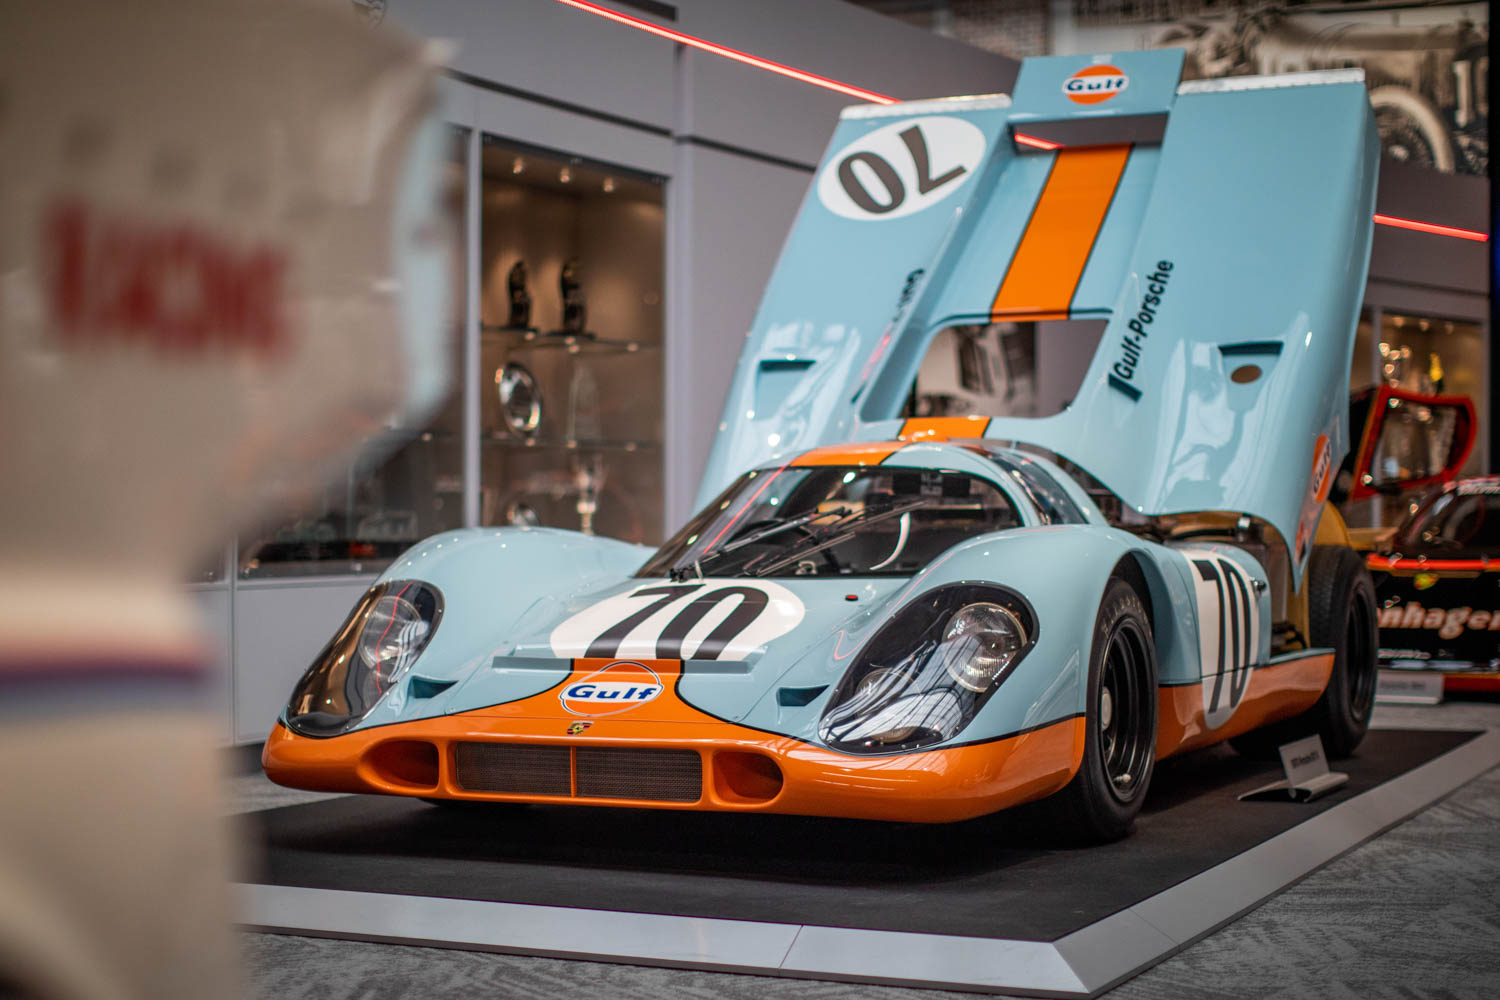 This 1970 Porsche 917K was used in the Steve McQueen film, Le Mans.